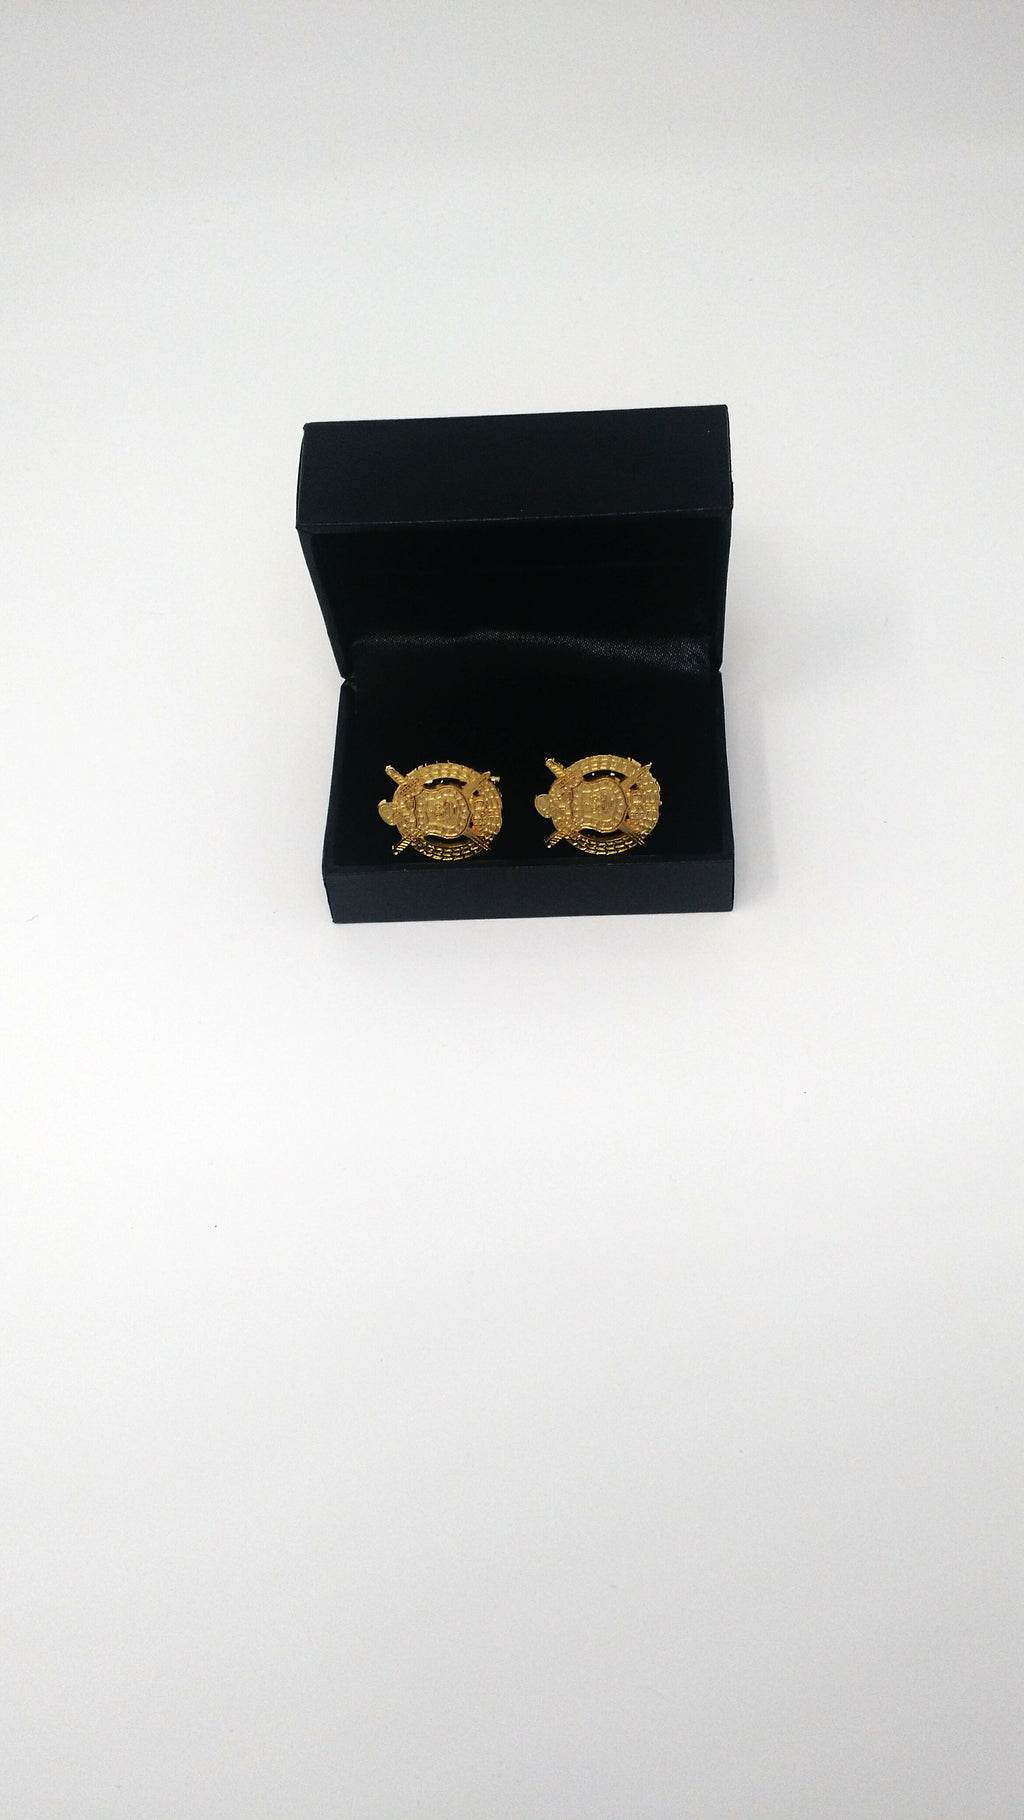 Omega Psi Phi Gold Crest Sandblast Cuff Links